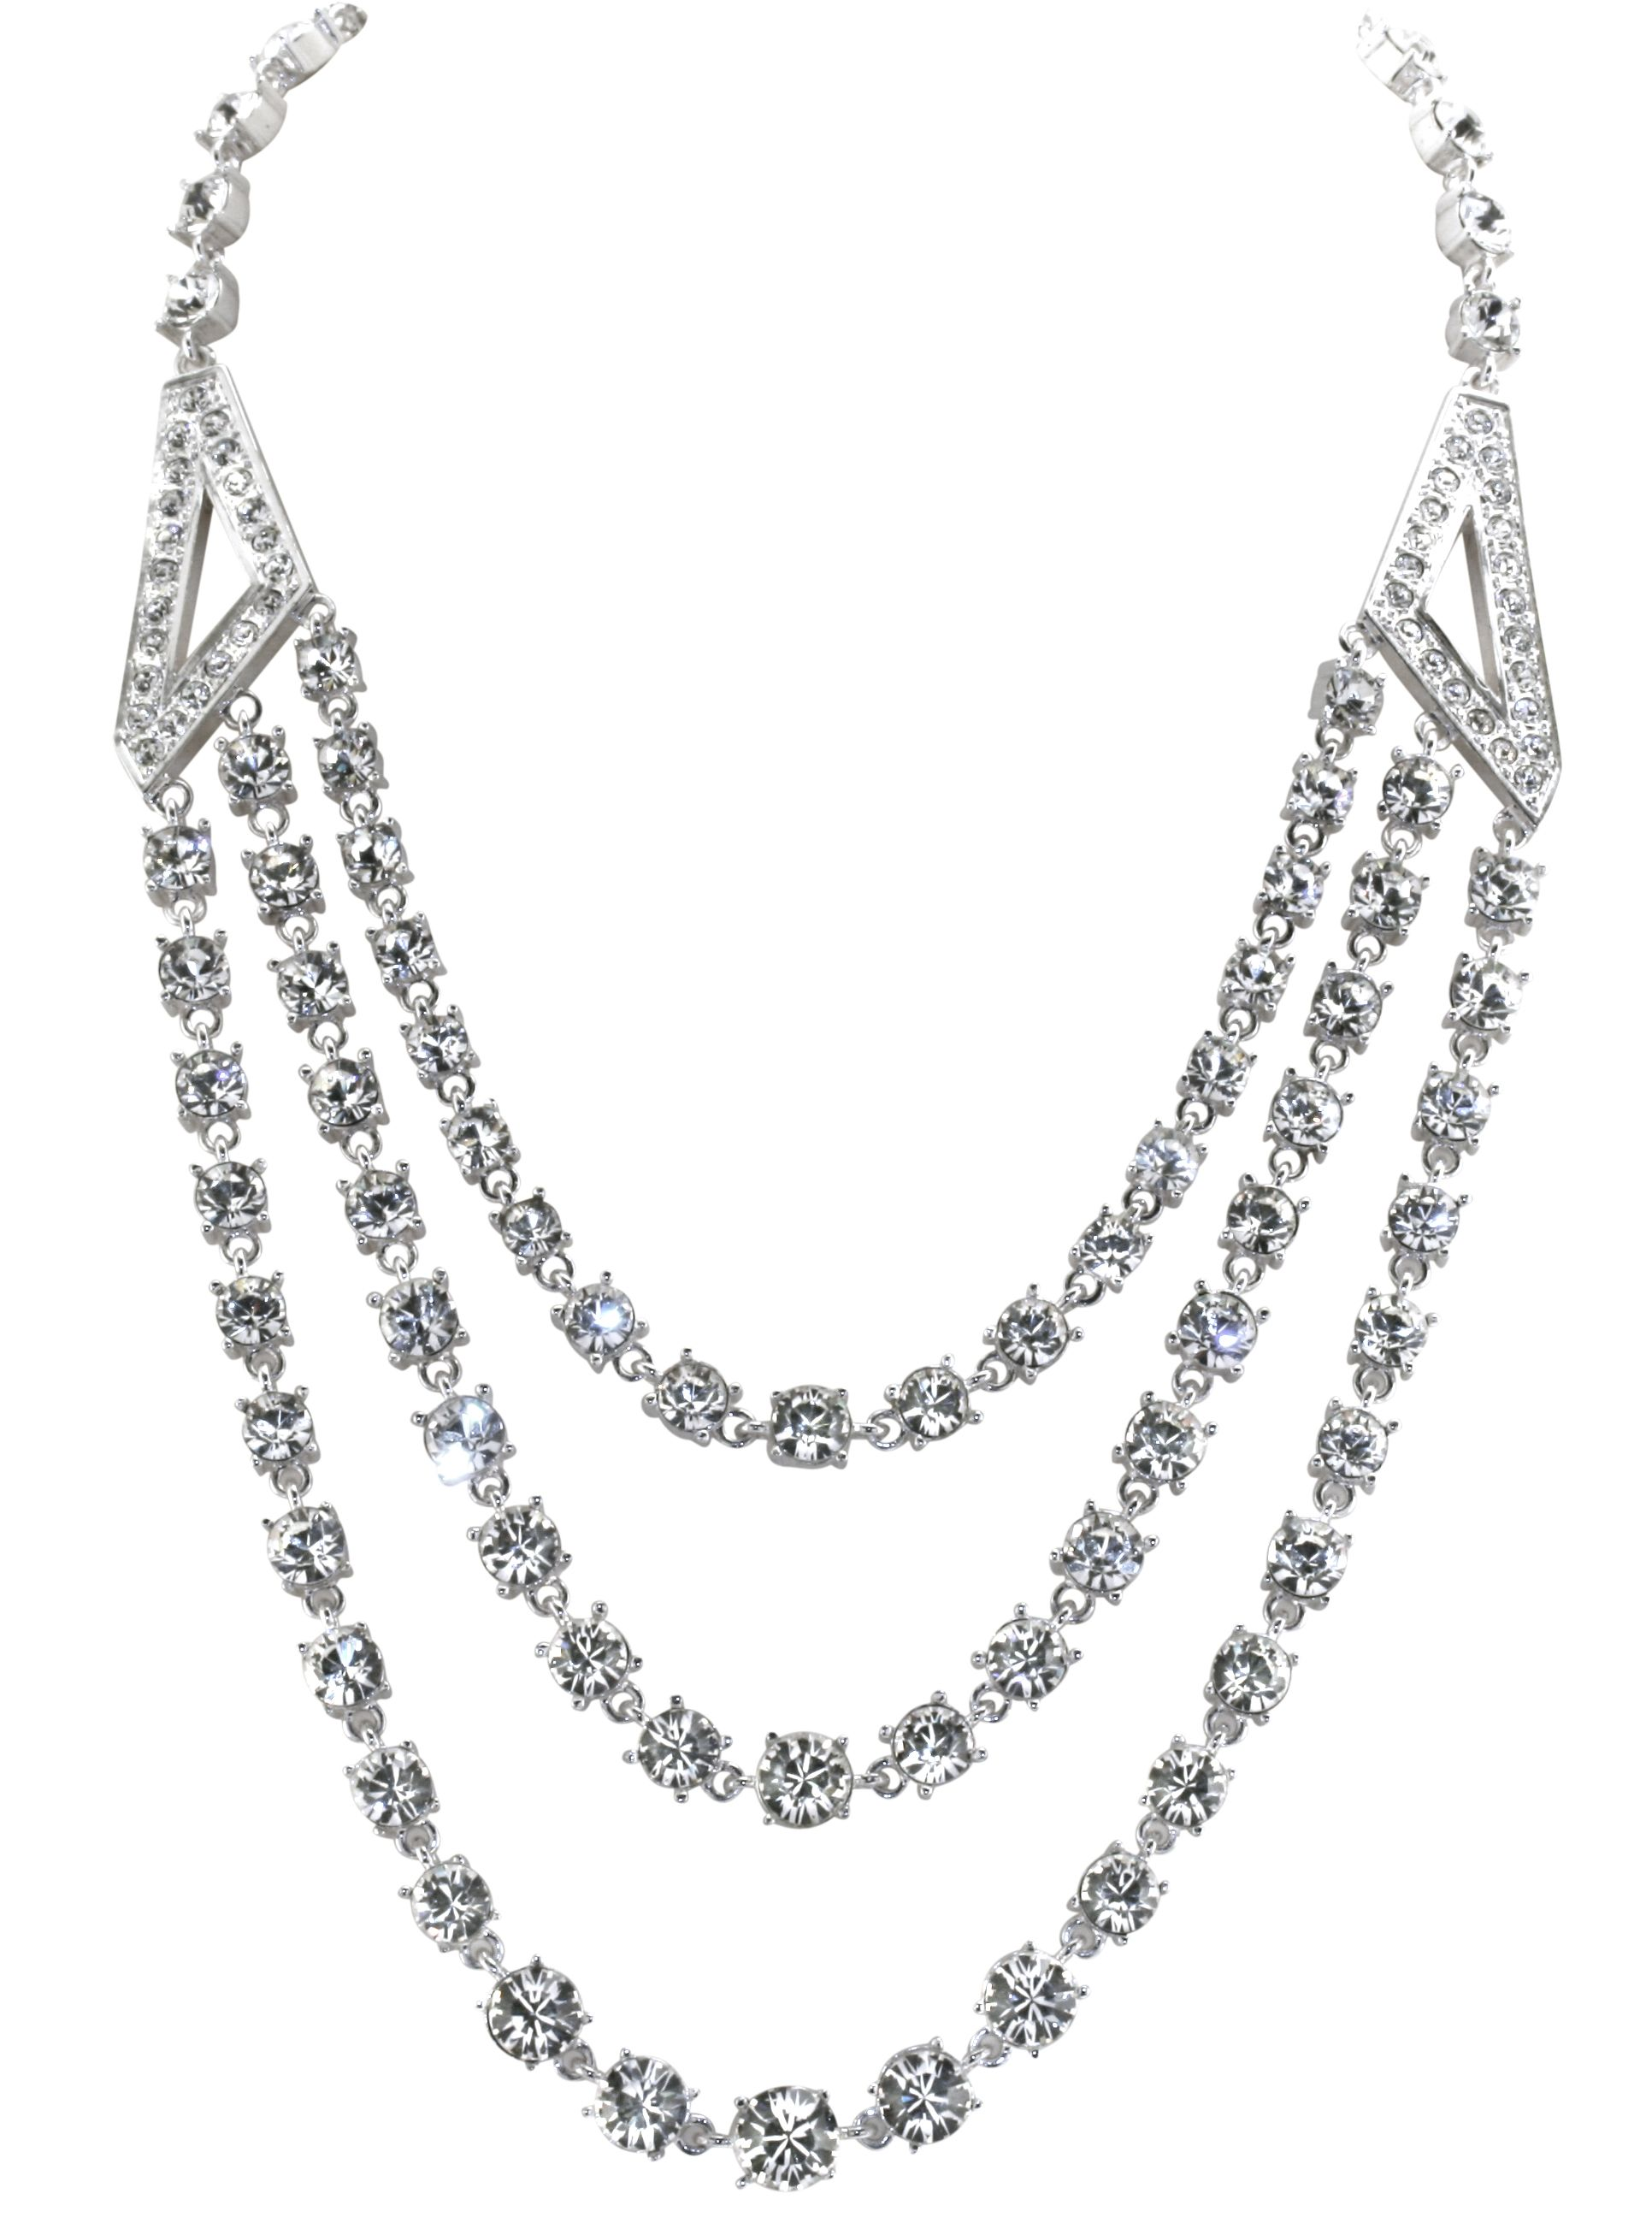 Festoon Necklace. In 1947 King George VI commissioned a three ...